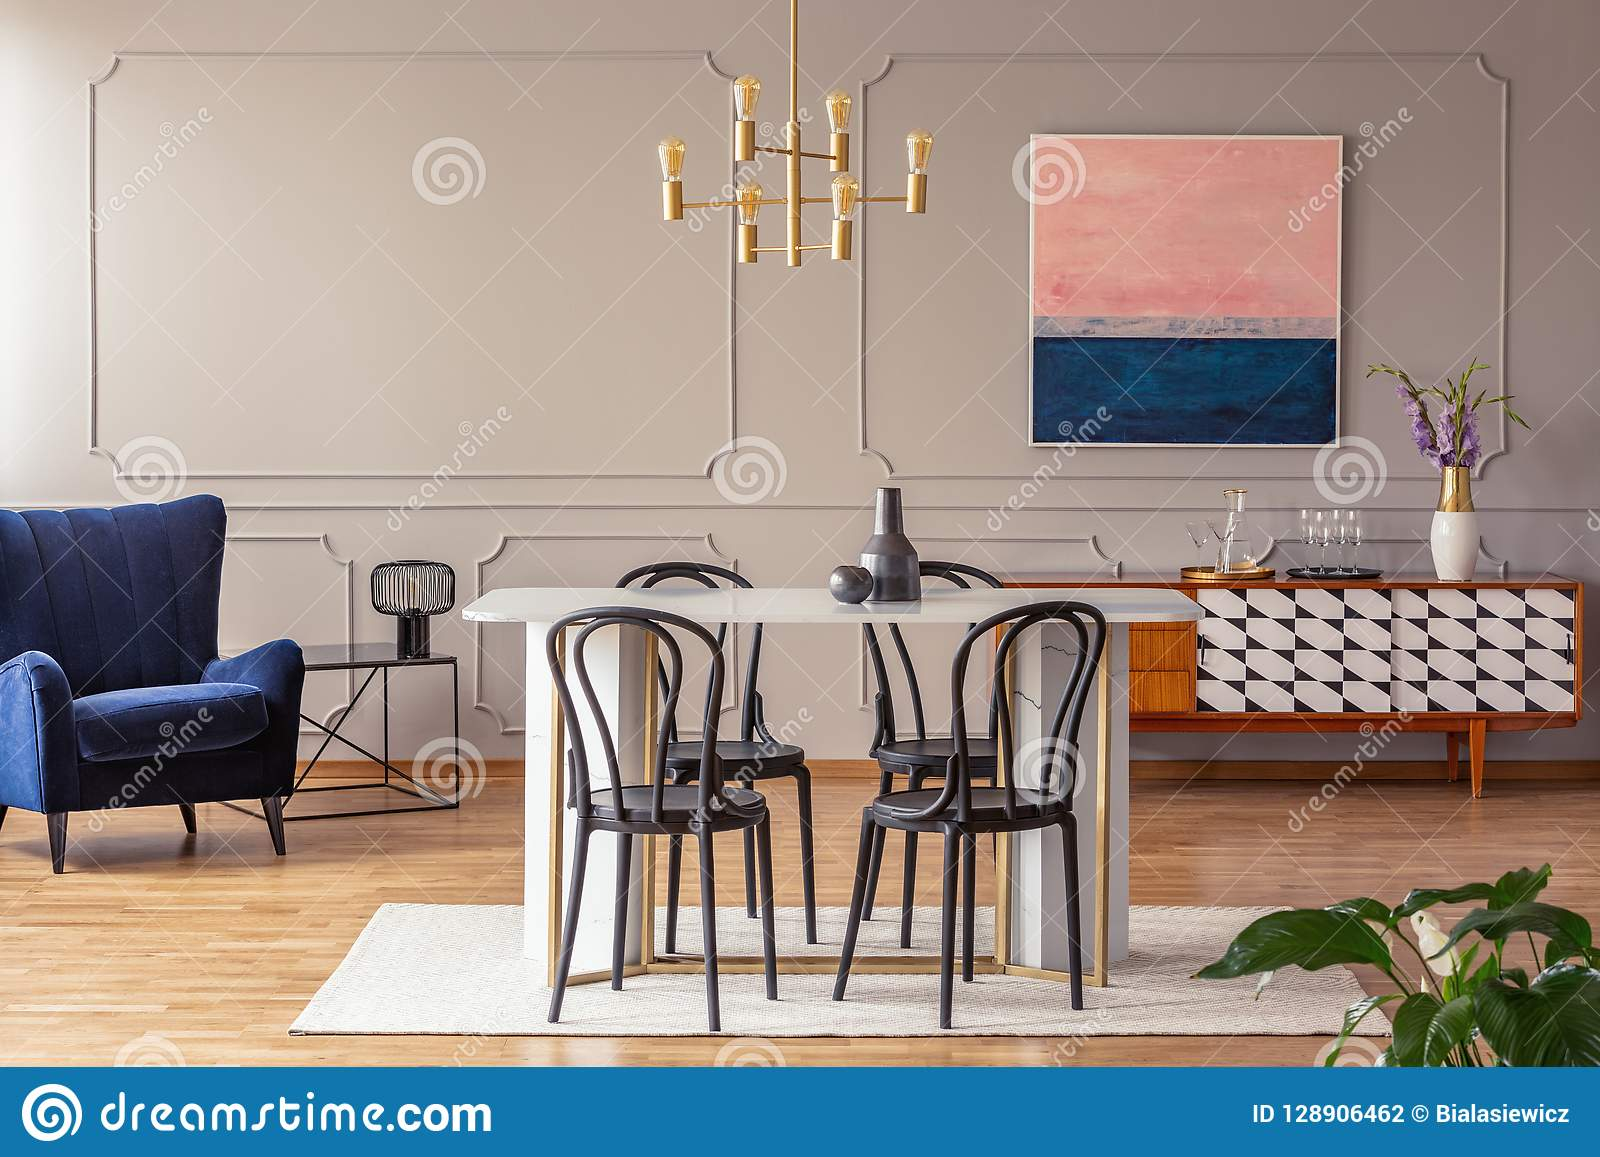 Pink and navy blue abstract painting on a gray wall with molding in an elegant dining and living room